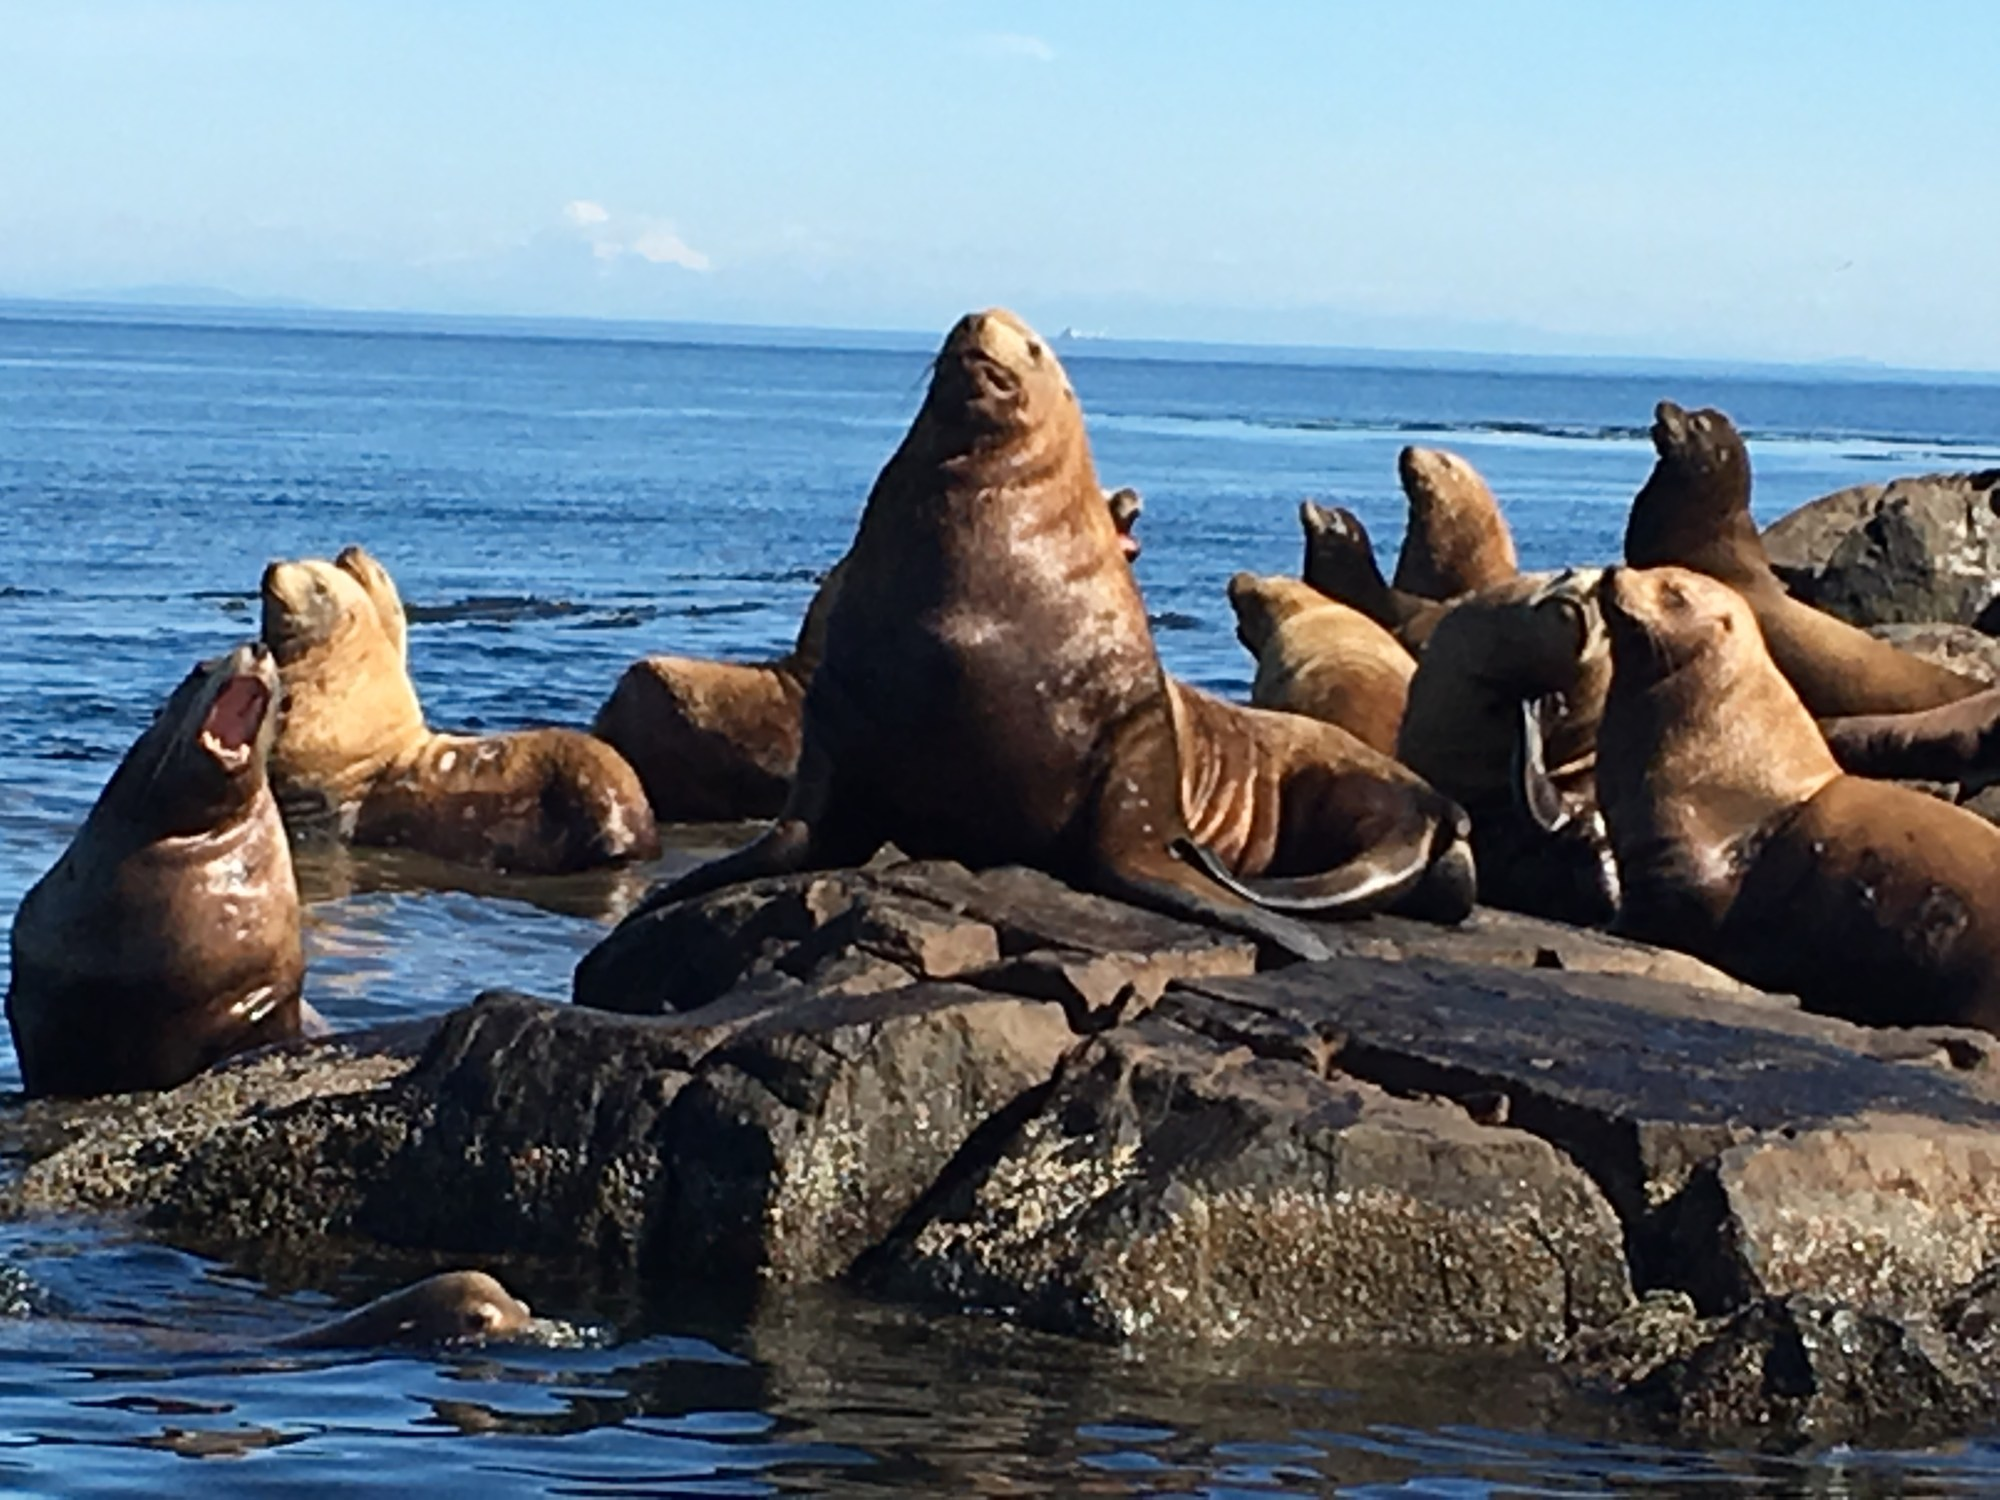 hight resolution of northern steller sea lion also a branded one in this photo haul out near the docks and on the isthmus under the light tower